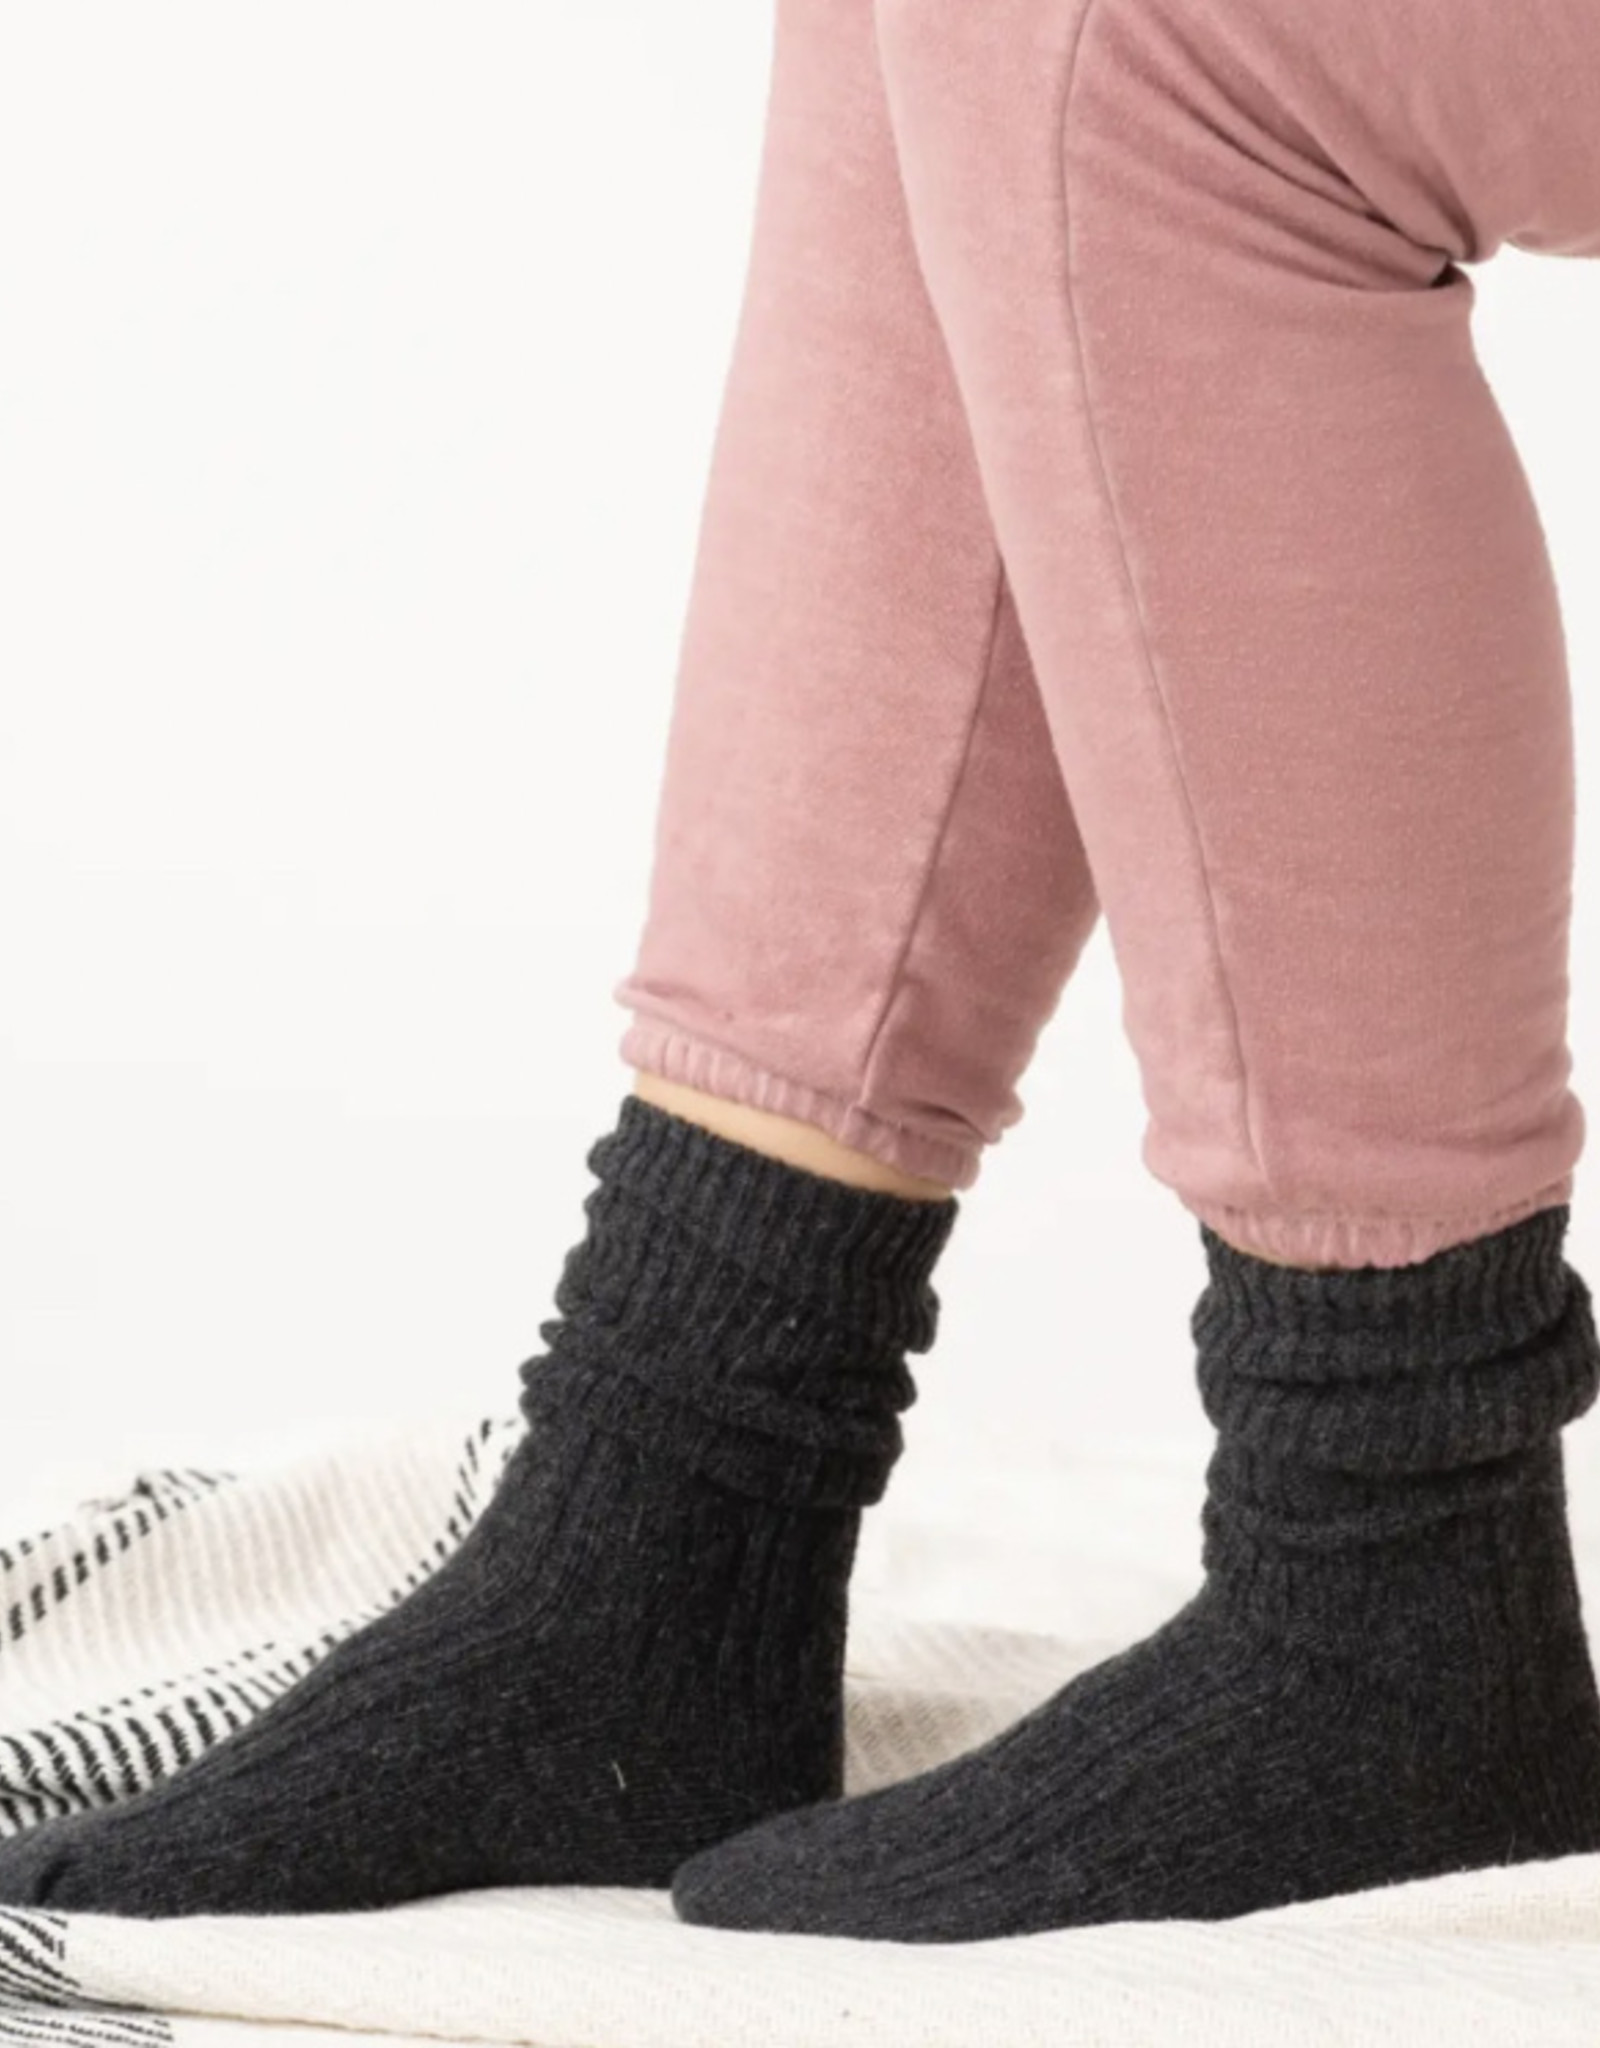 Essential Cable Knit Socks